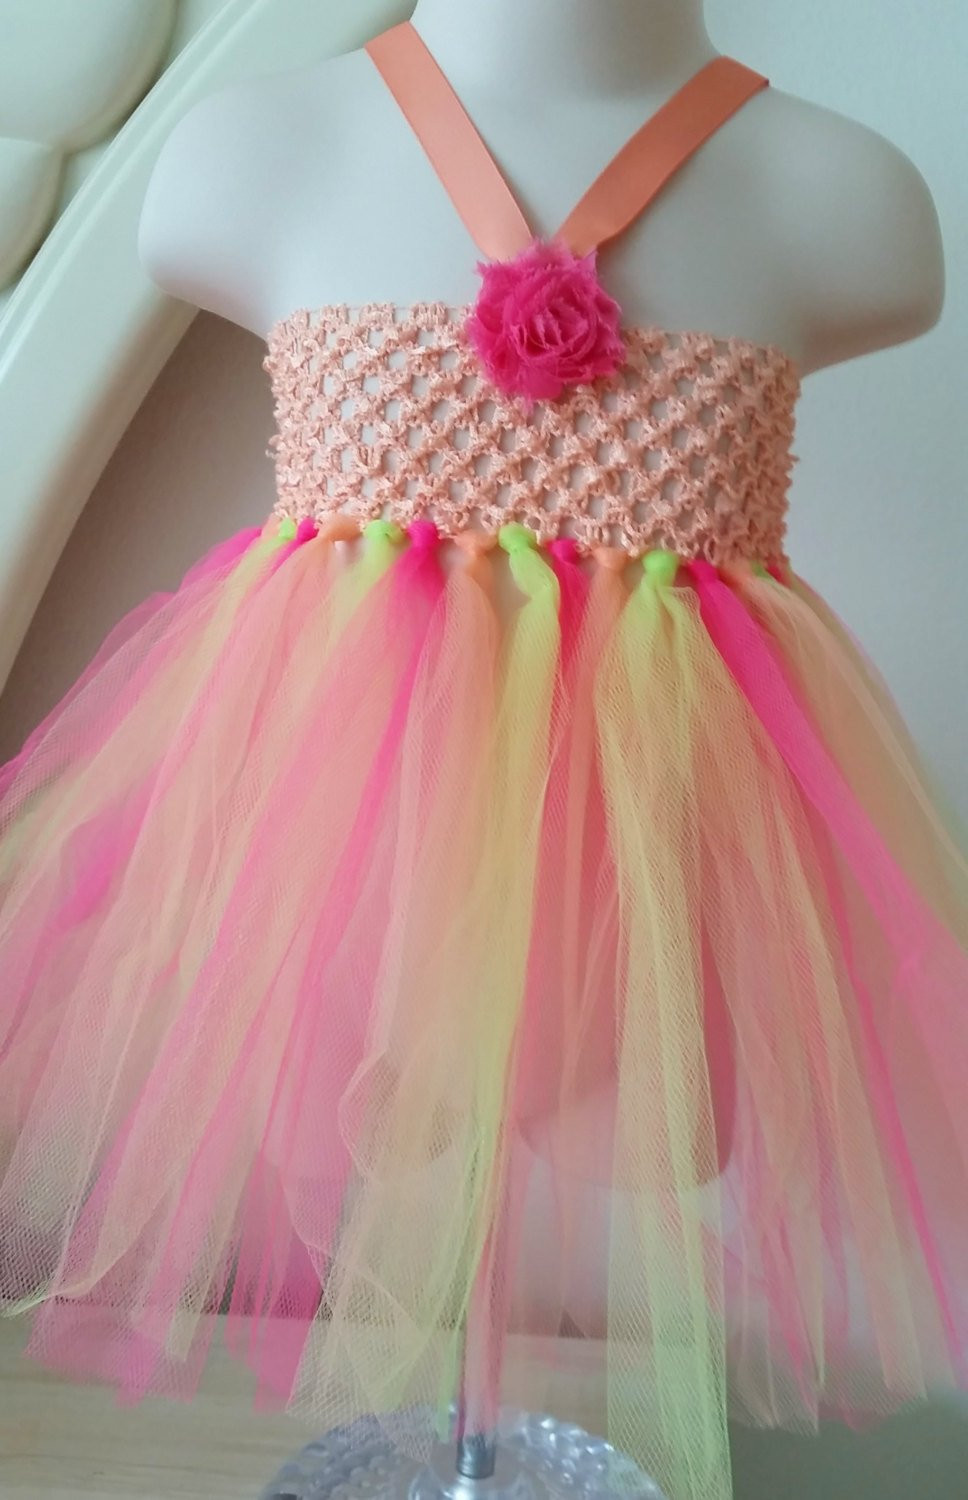 Best Of Chandeliers & Pendant Lights Crochet tops for Tutus Of Adorable 45 Models Crochet tops for Tutus